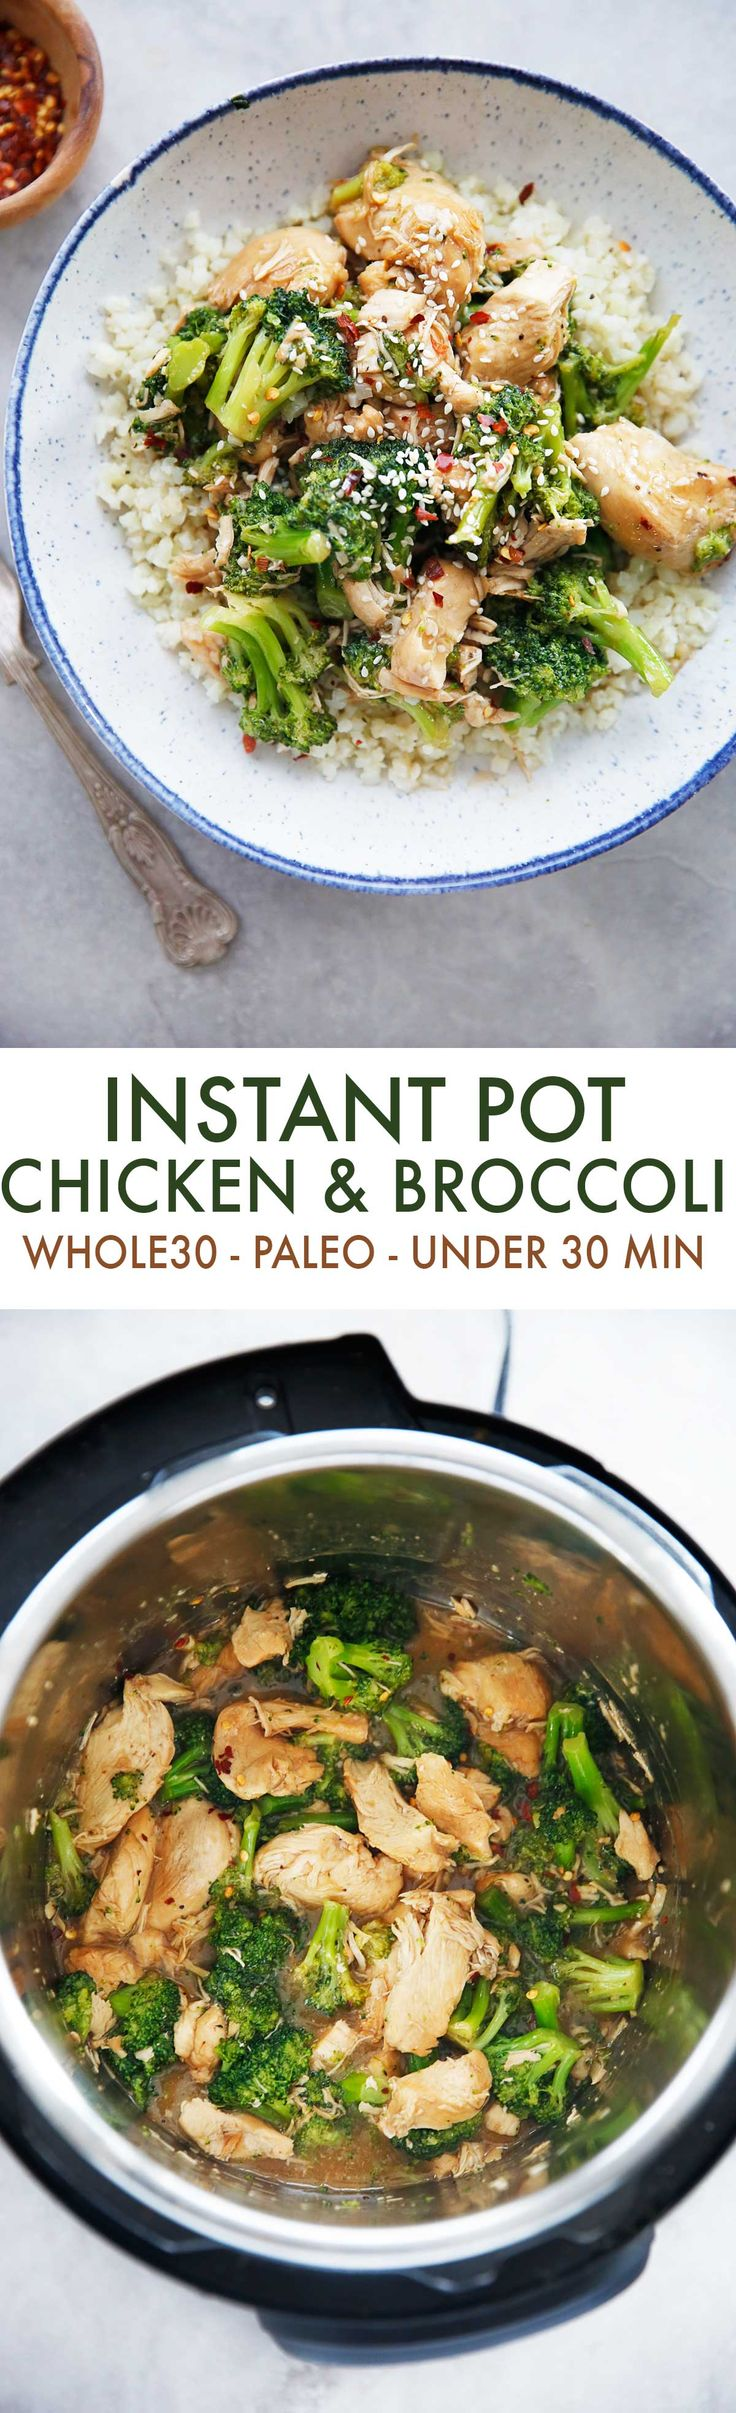 Skip To RecipeThis easy Chinese Chicken and Broccoli recipe is made in the Instant Pot pressure cooker and is paleo-friendly …